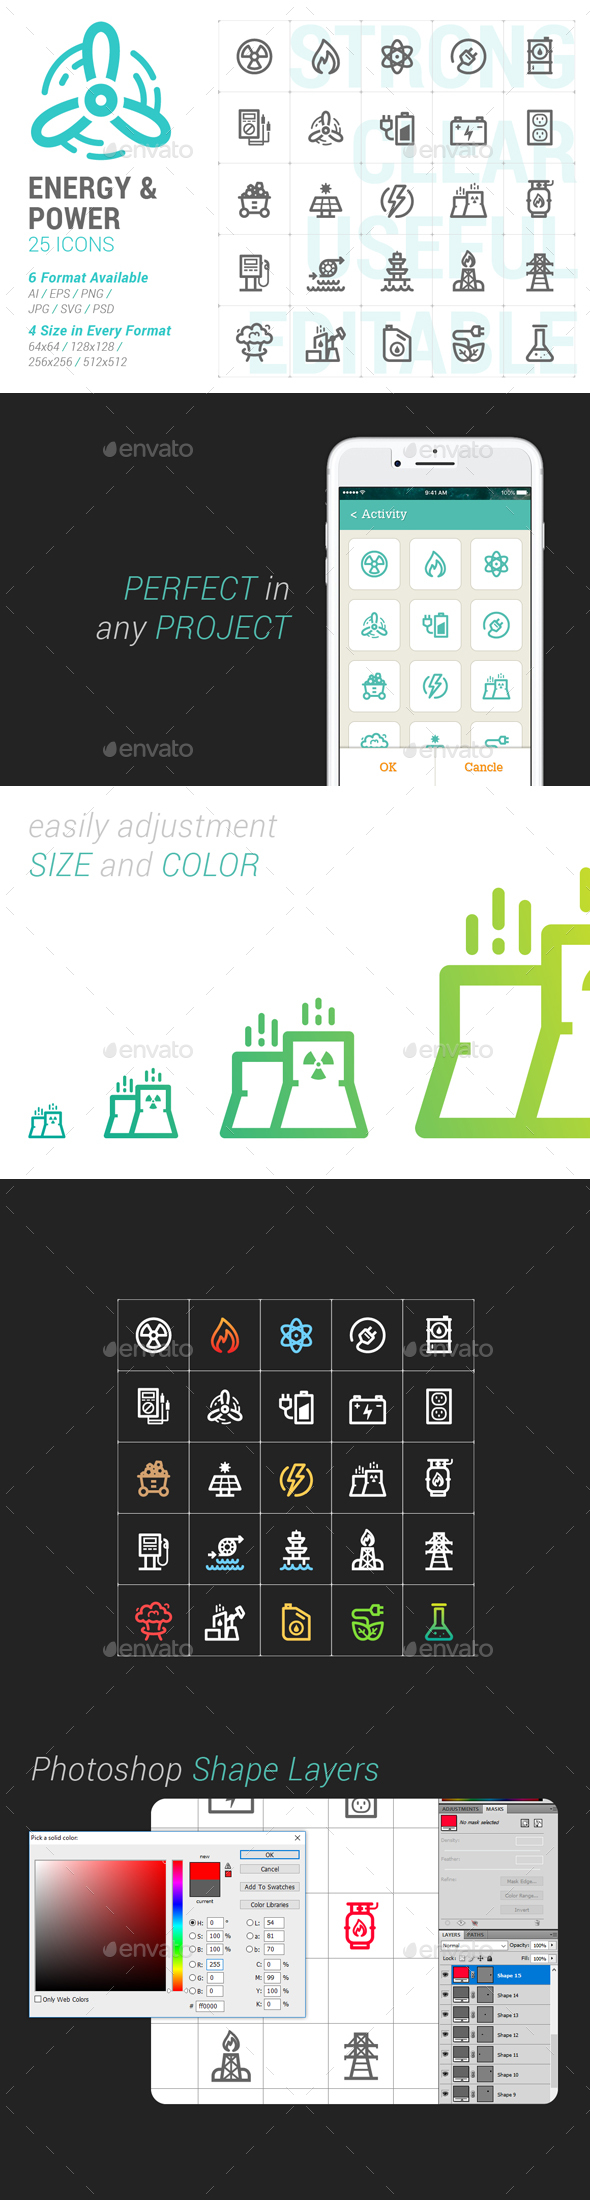 Energy & Power Mini Icon - Objects Icons